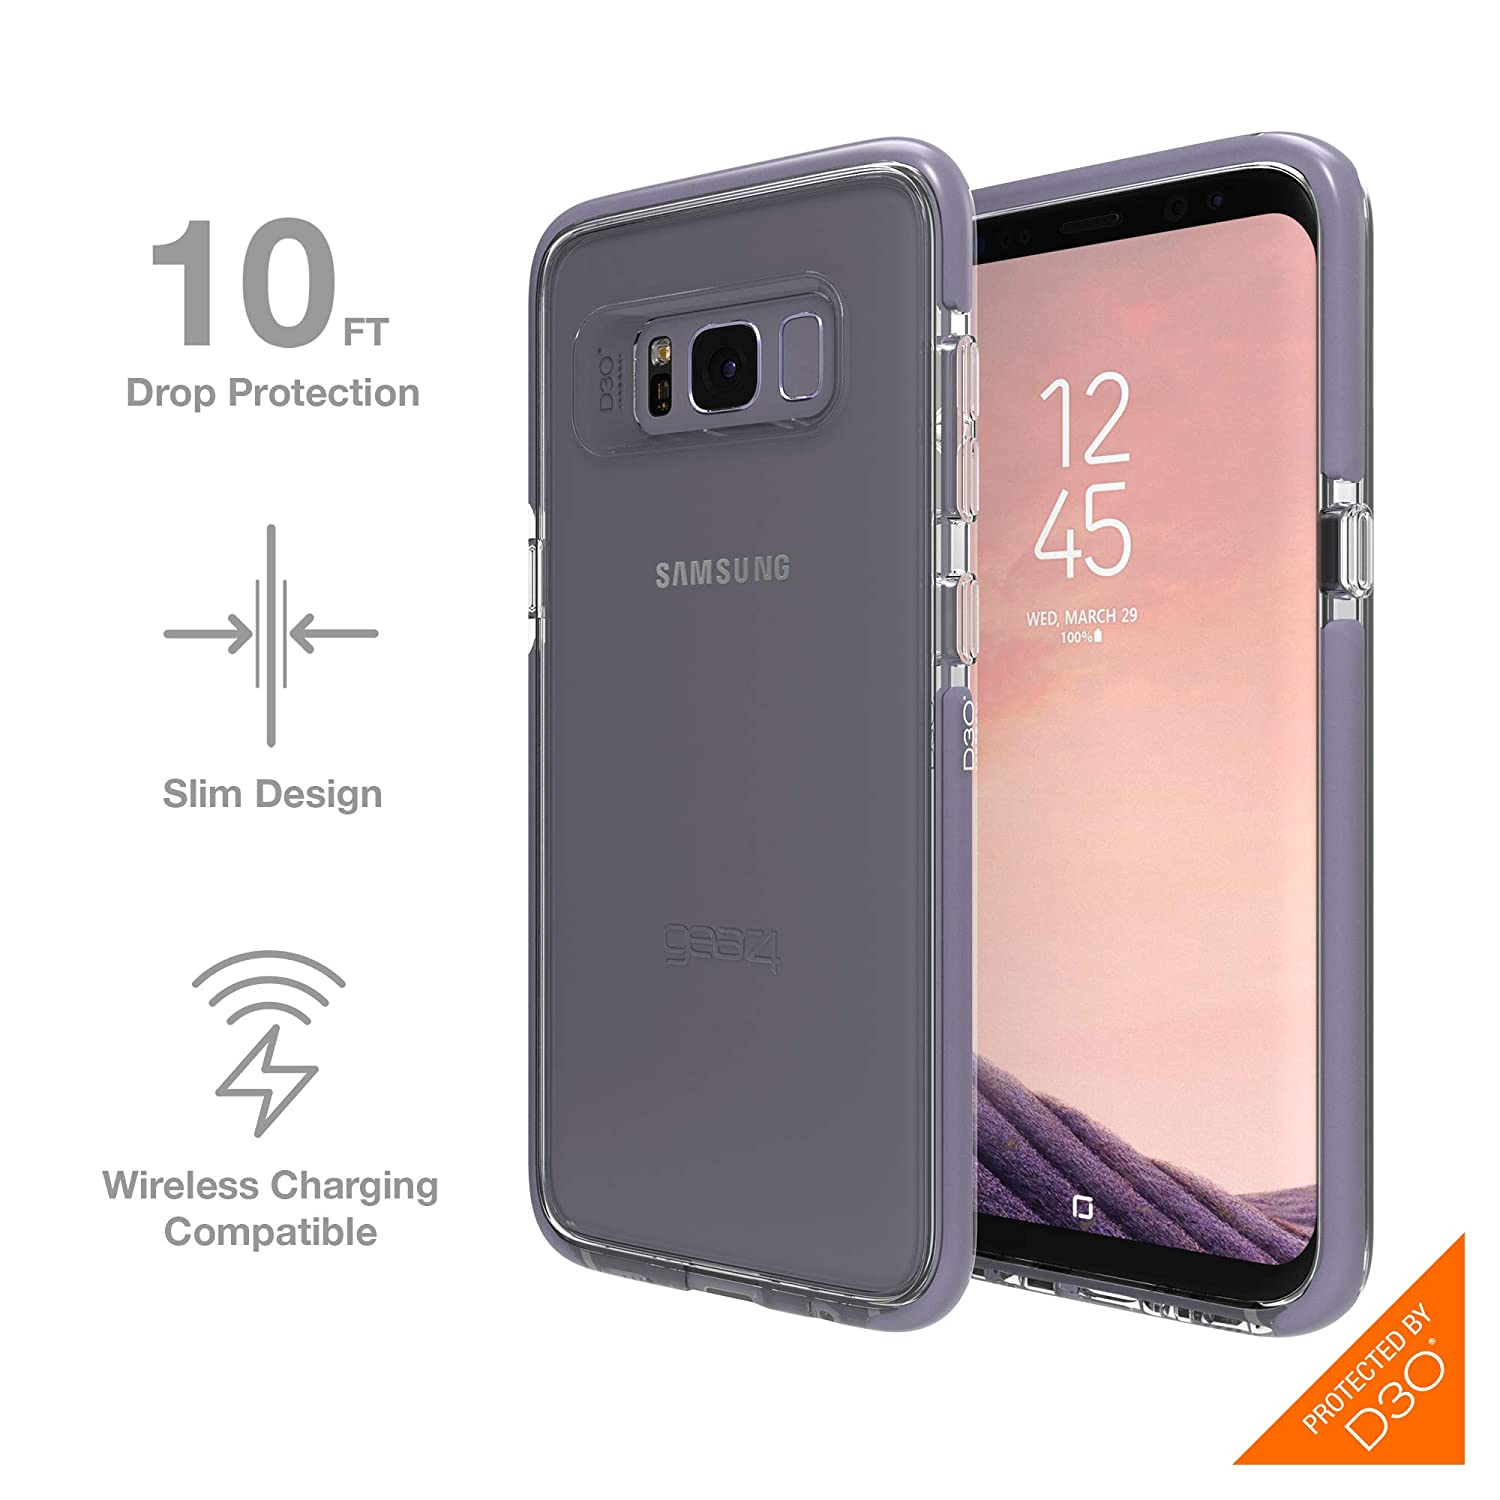 size 40 3fe77 aae4d Gear4 SGS8081D3 Piccadilly Case for Samsung Galaxy S8 with D30 Impact  Protection - Orchid Grey